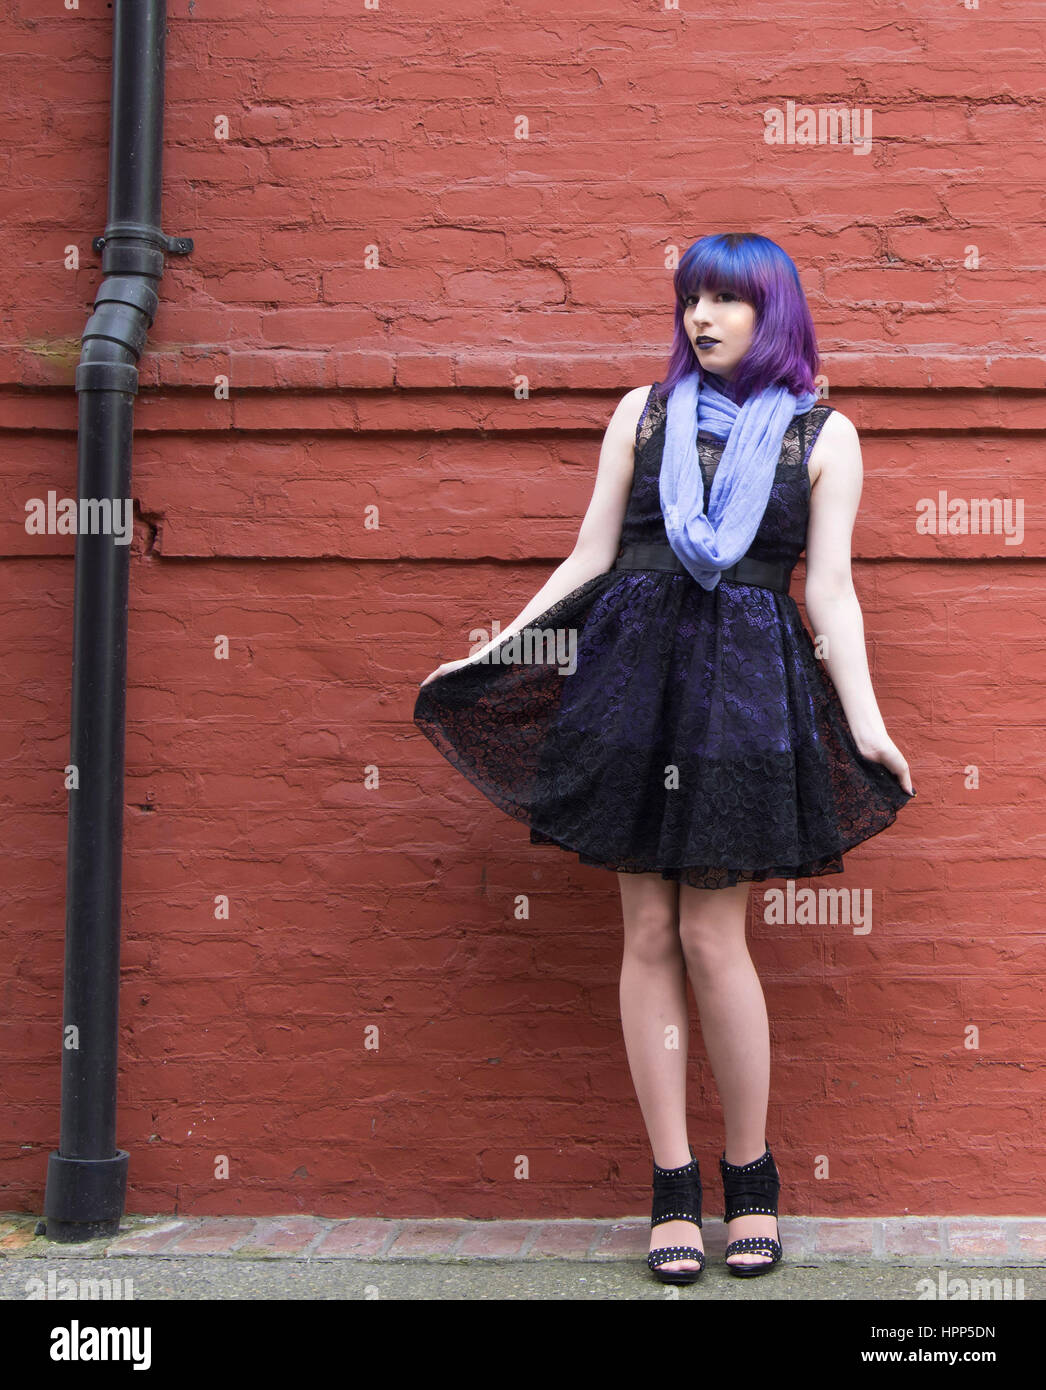 alternative, sassy woman wearing black dress, multi colored hair, red brick wall backgound - Stock Image